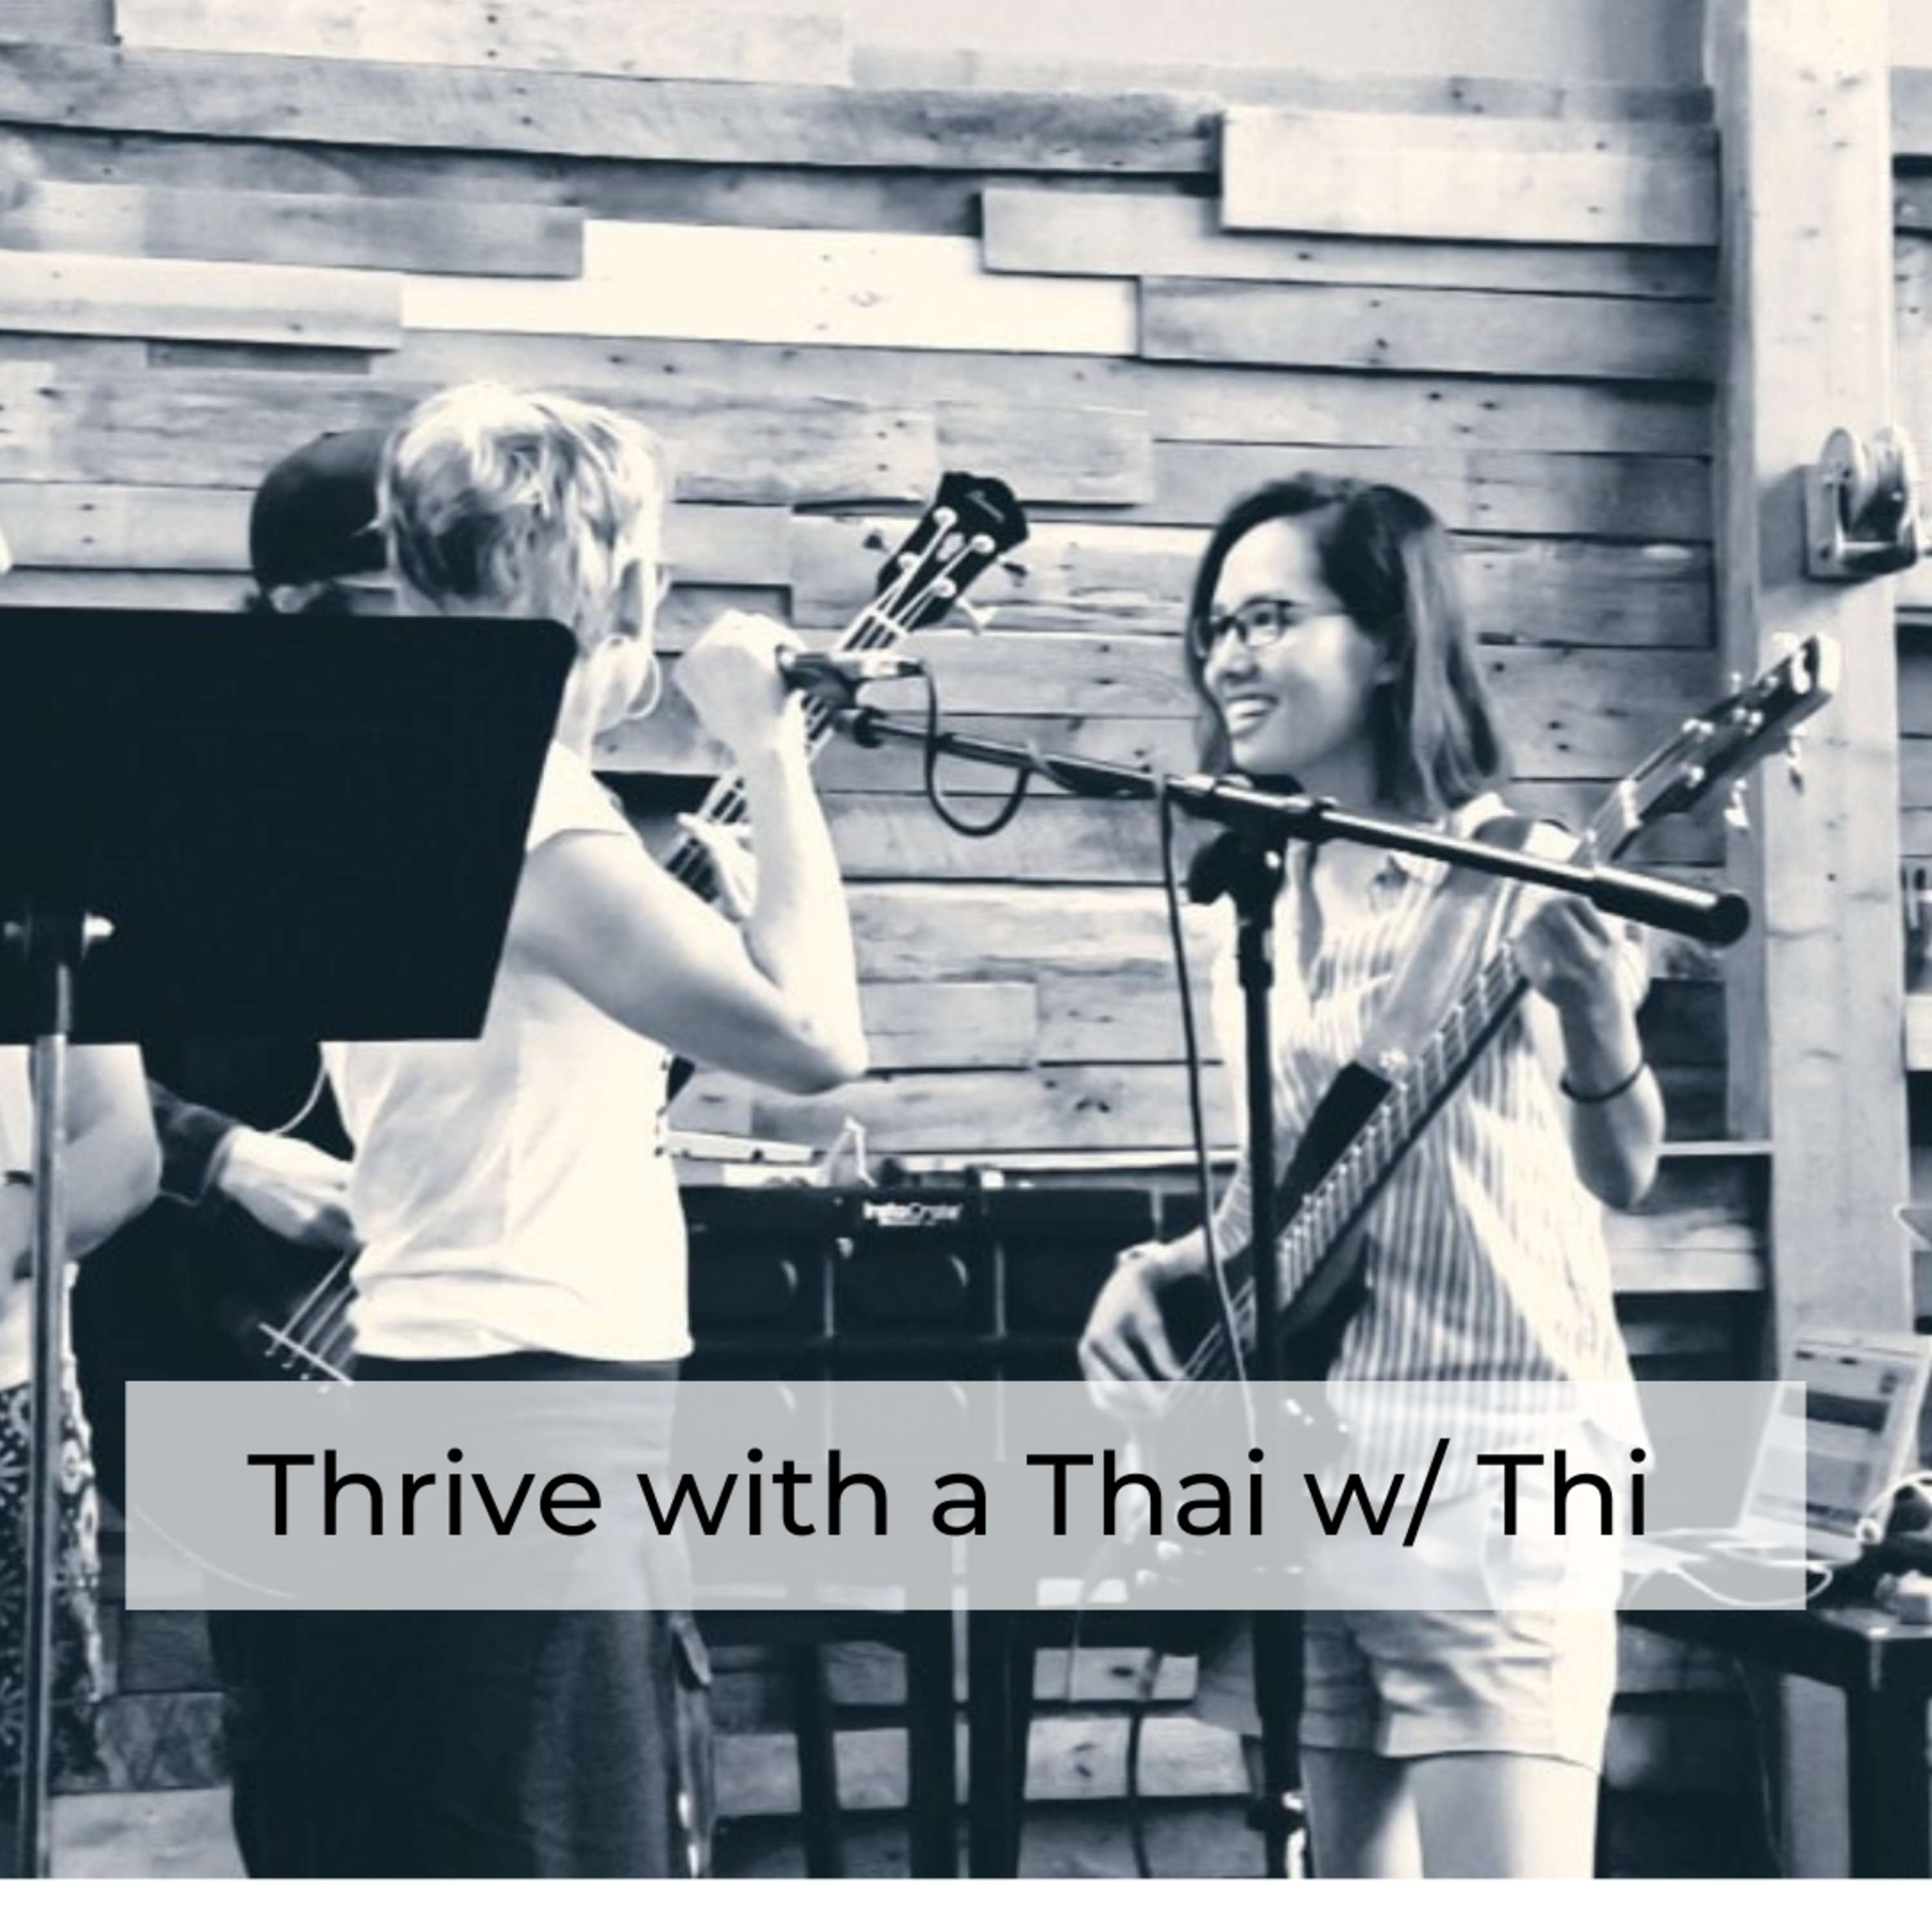 [International Student] Thrive with a Thai w/ Thi #45